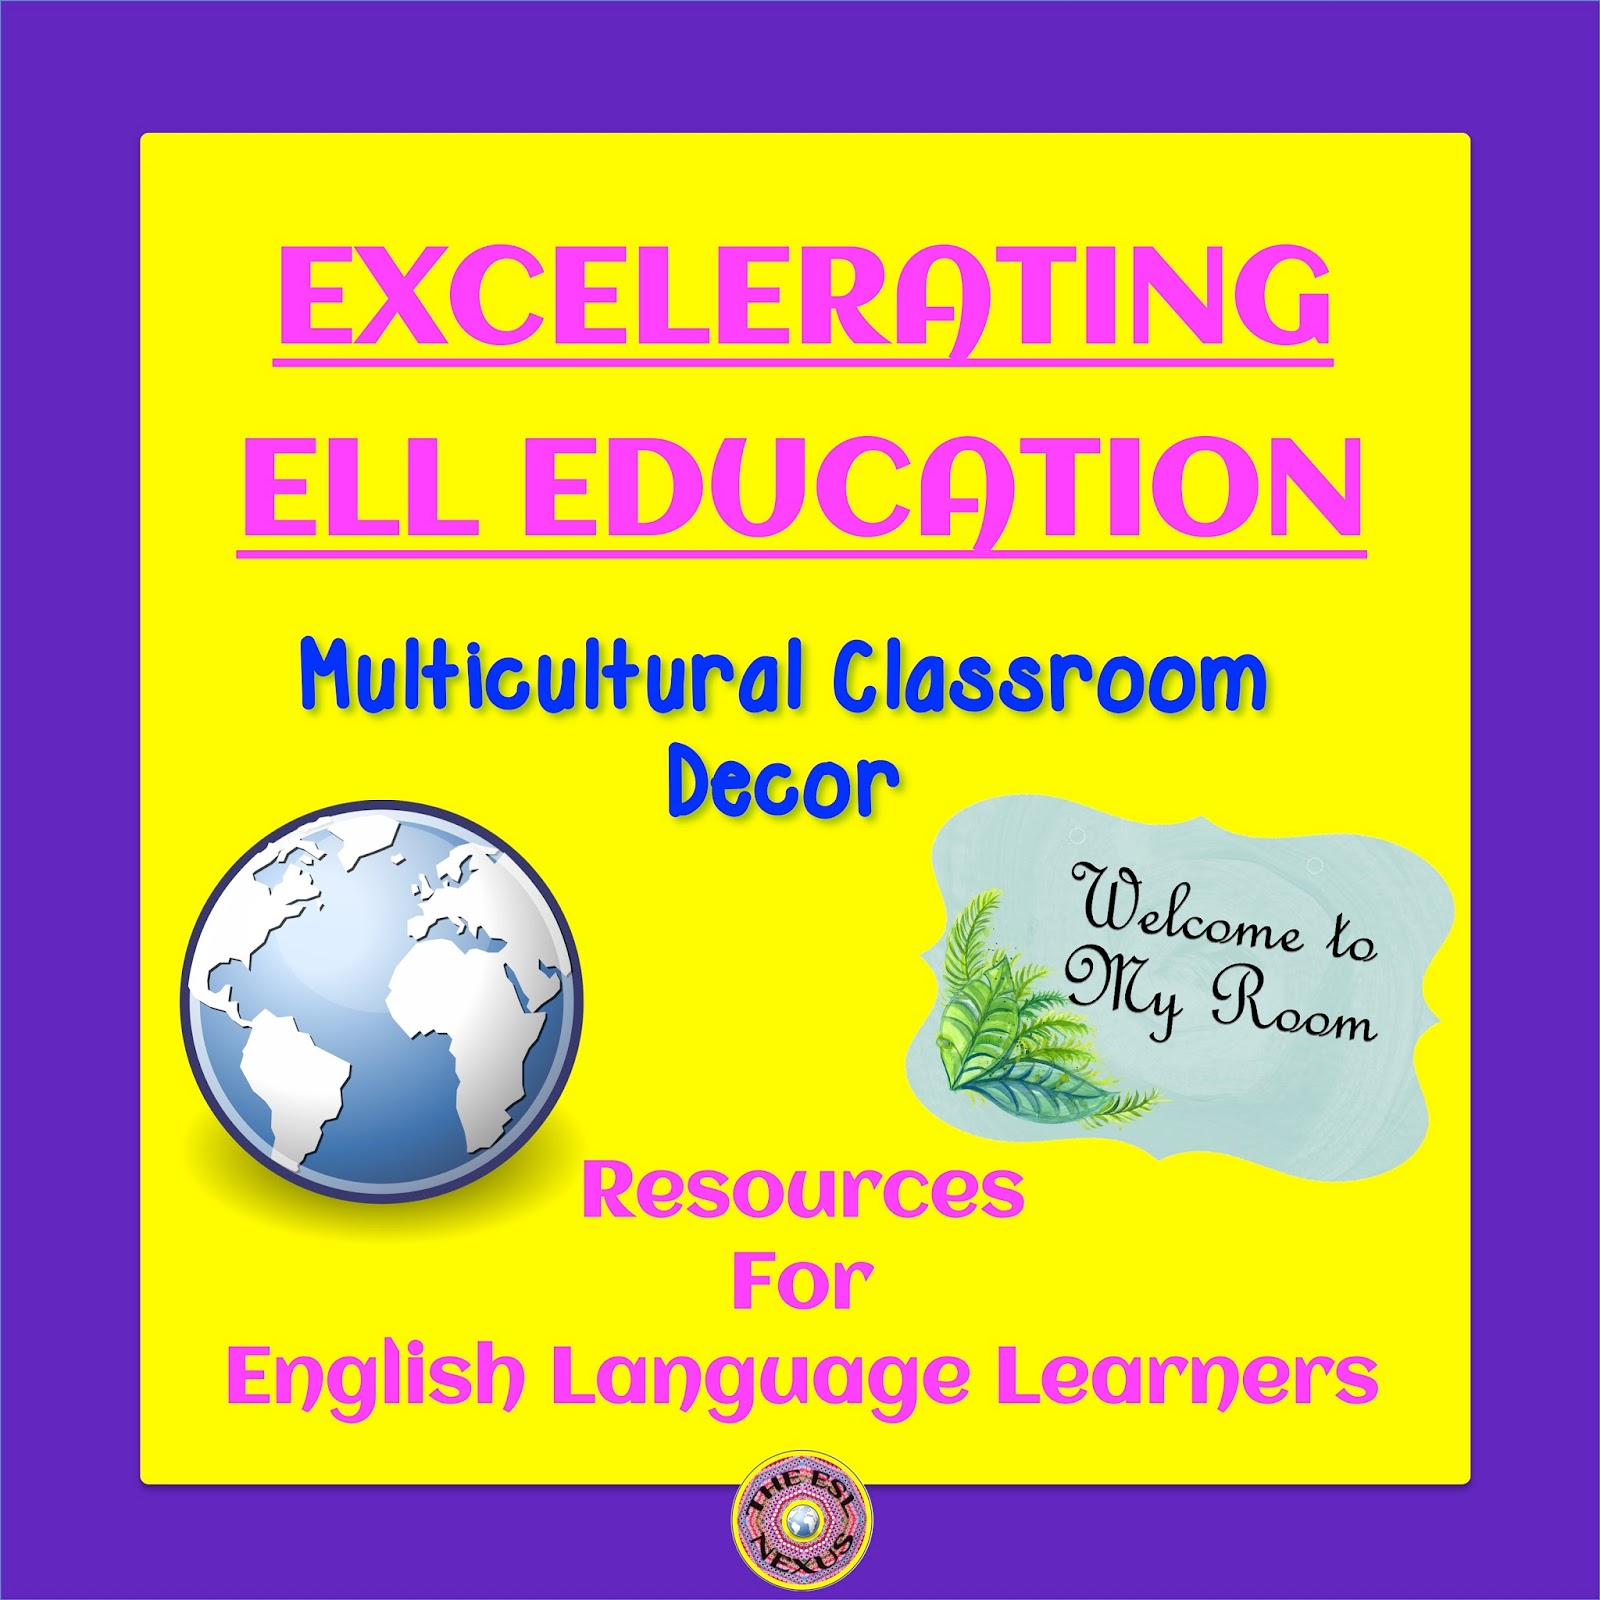 Add your multicultural classroom decor materials to the August ELL Excelerating linky party & find resources for your own classroom, too. | The ESL Connection